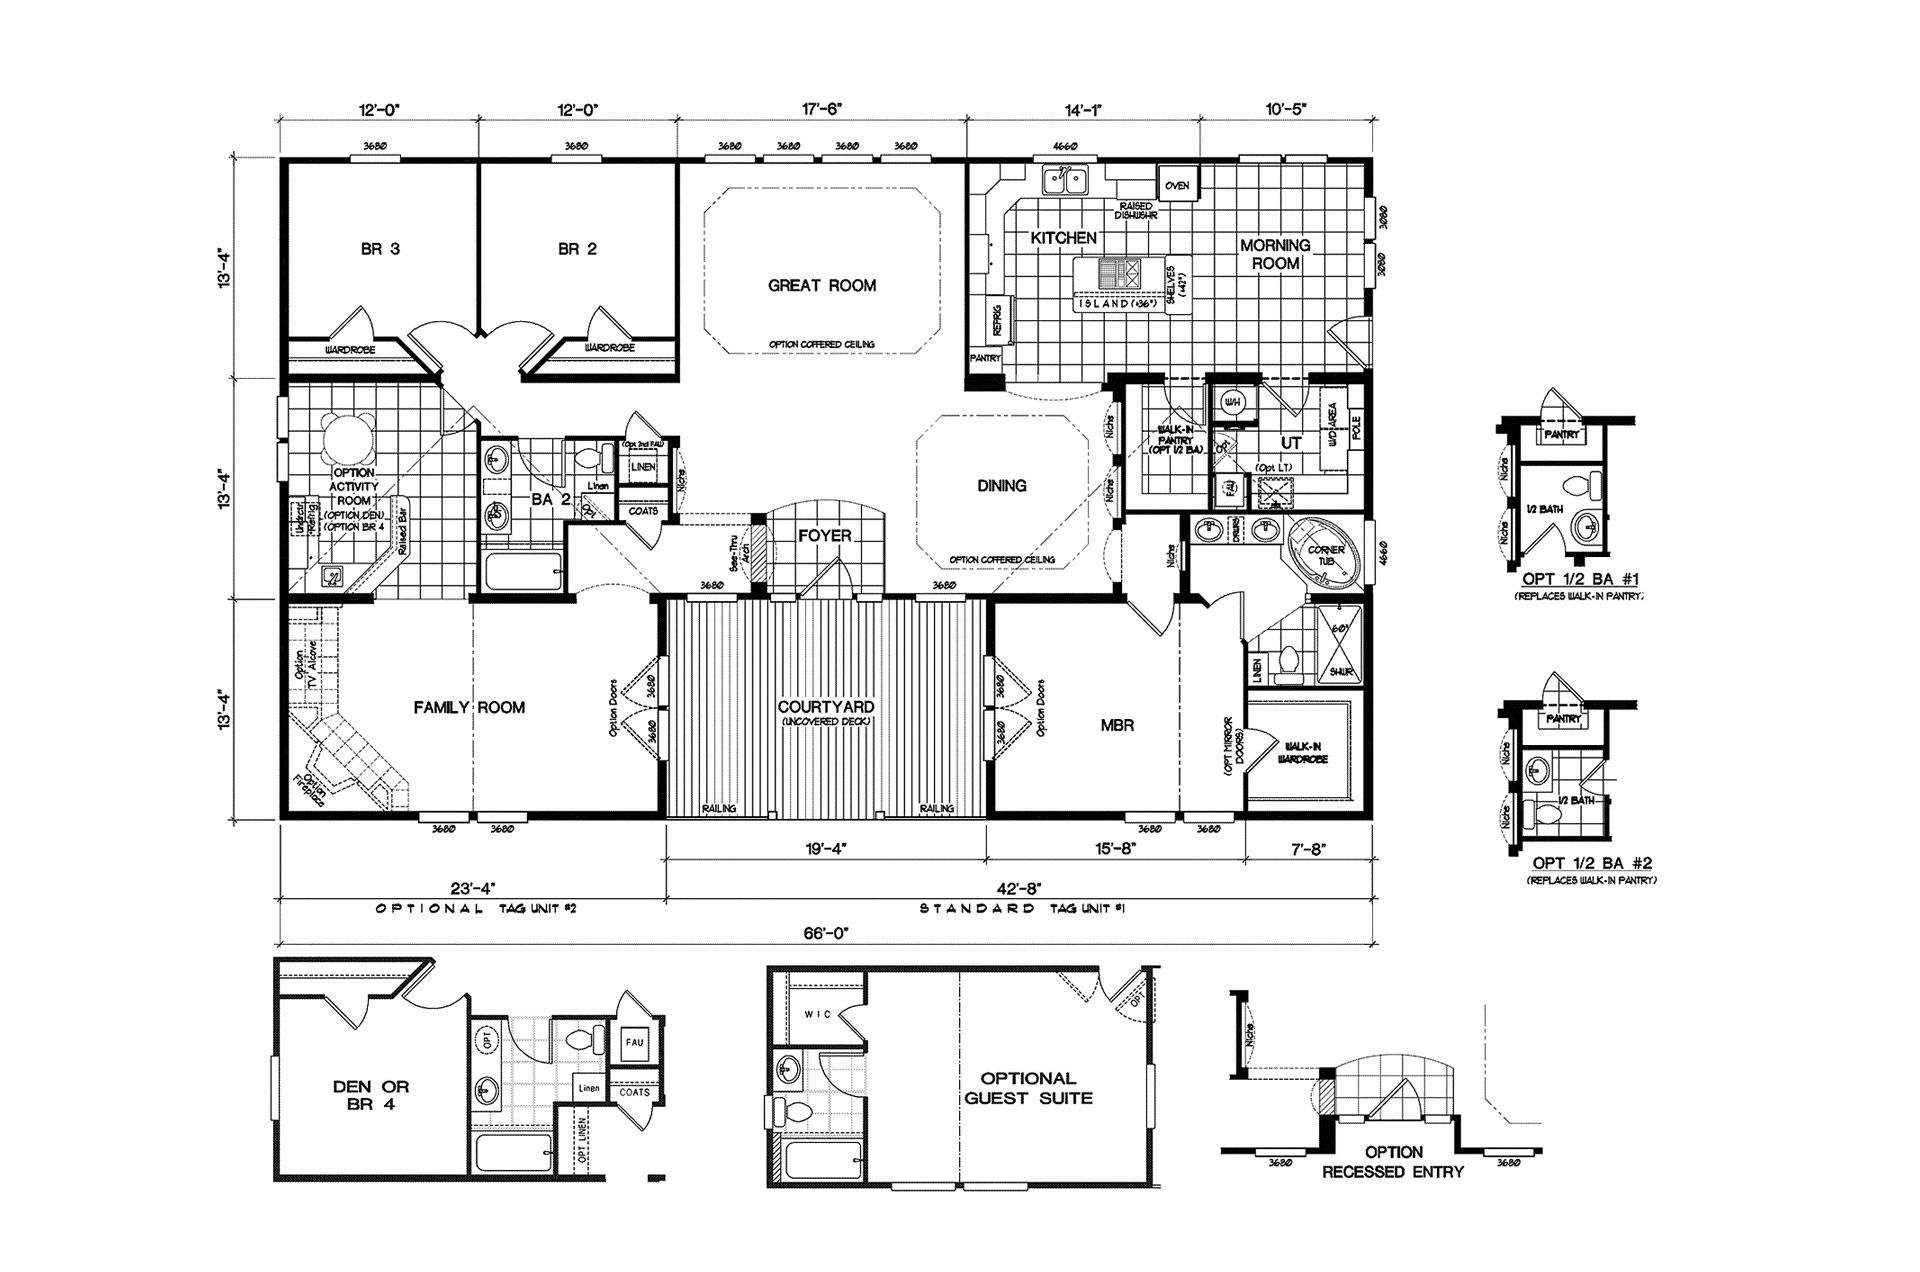 quadruple wide mobile home floor plans 5 bedroom 3 bathrooms quadruple wide mobile home floor plans 5 bedroom 3 bathrooms 2008 clayton quad